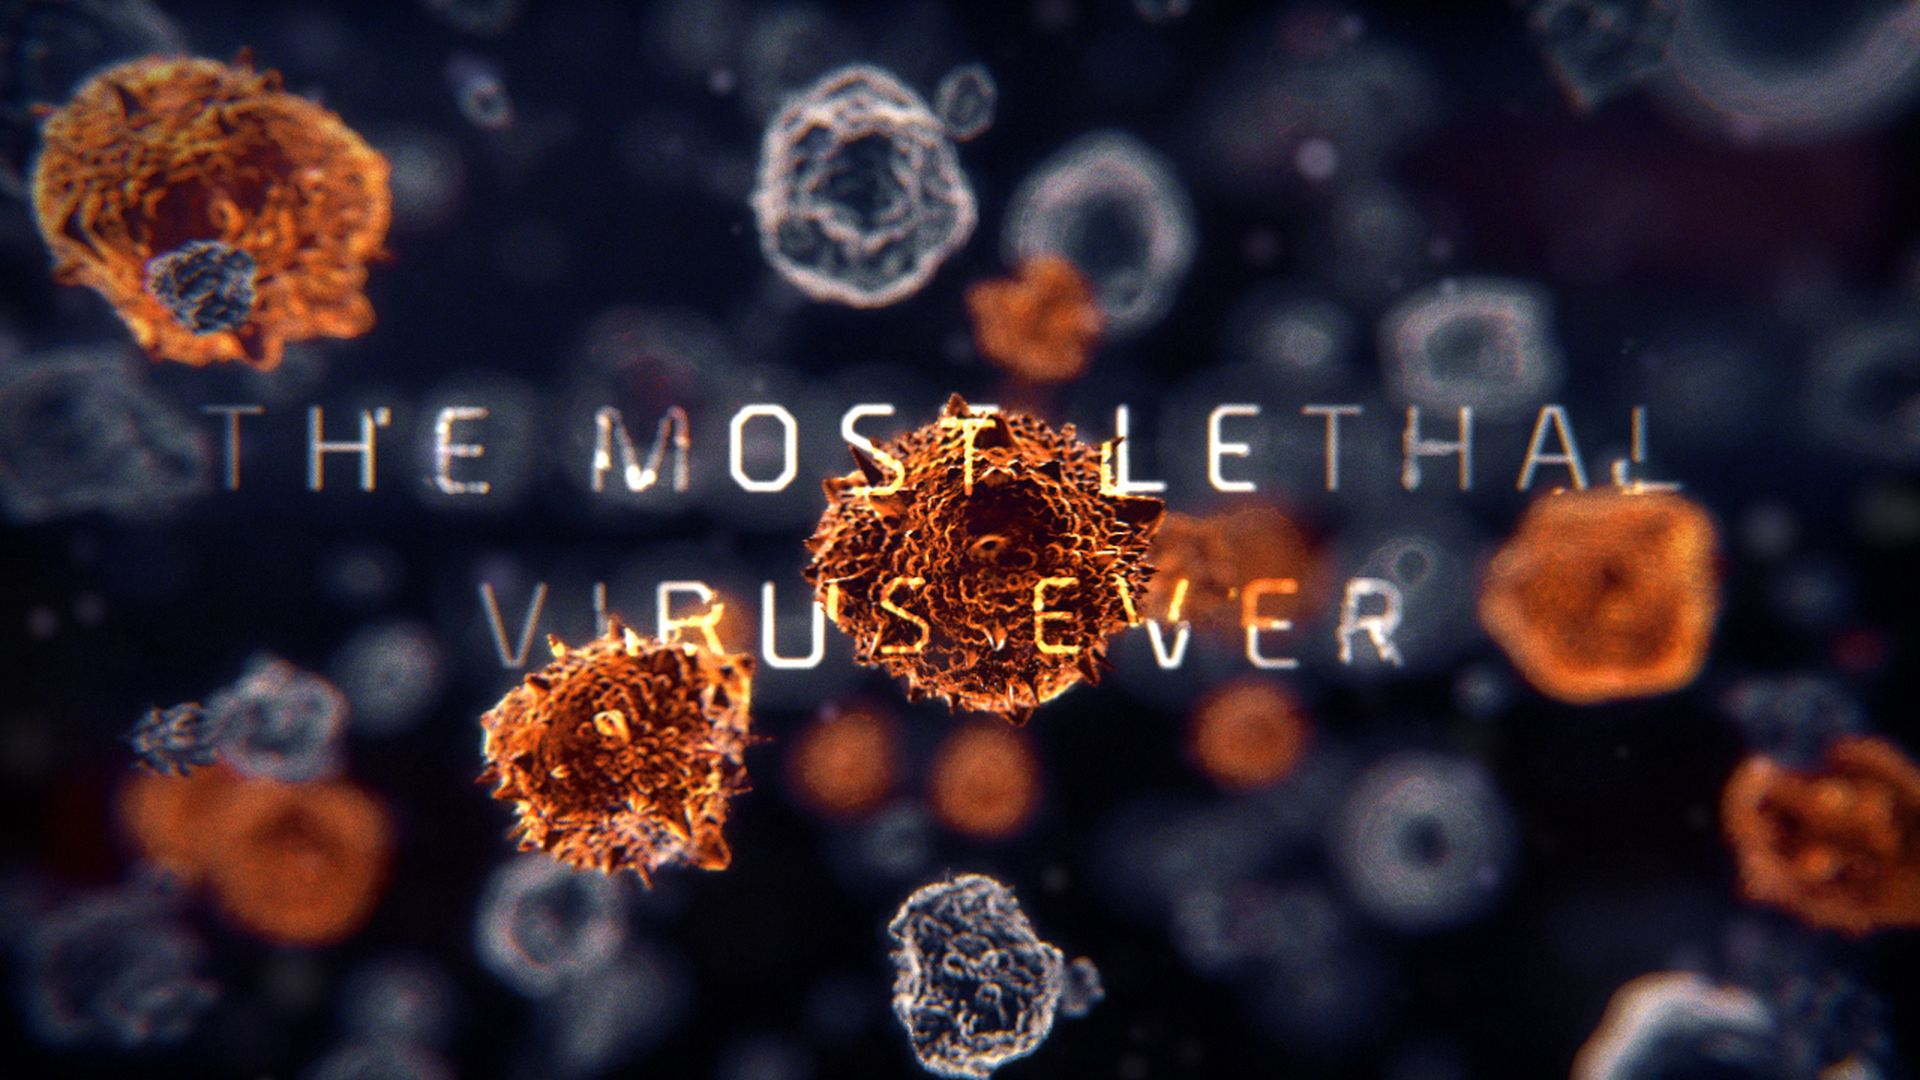 3D simulations of multiple virus evolving with a text projected on them